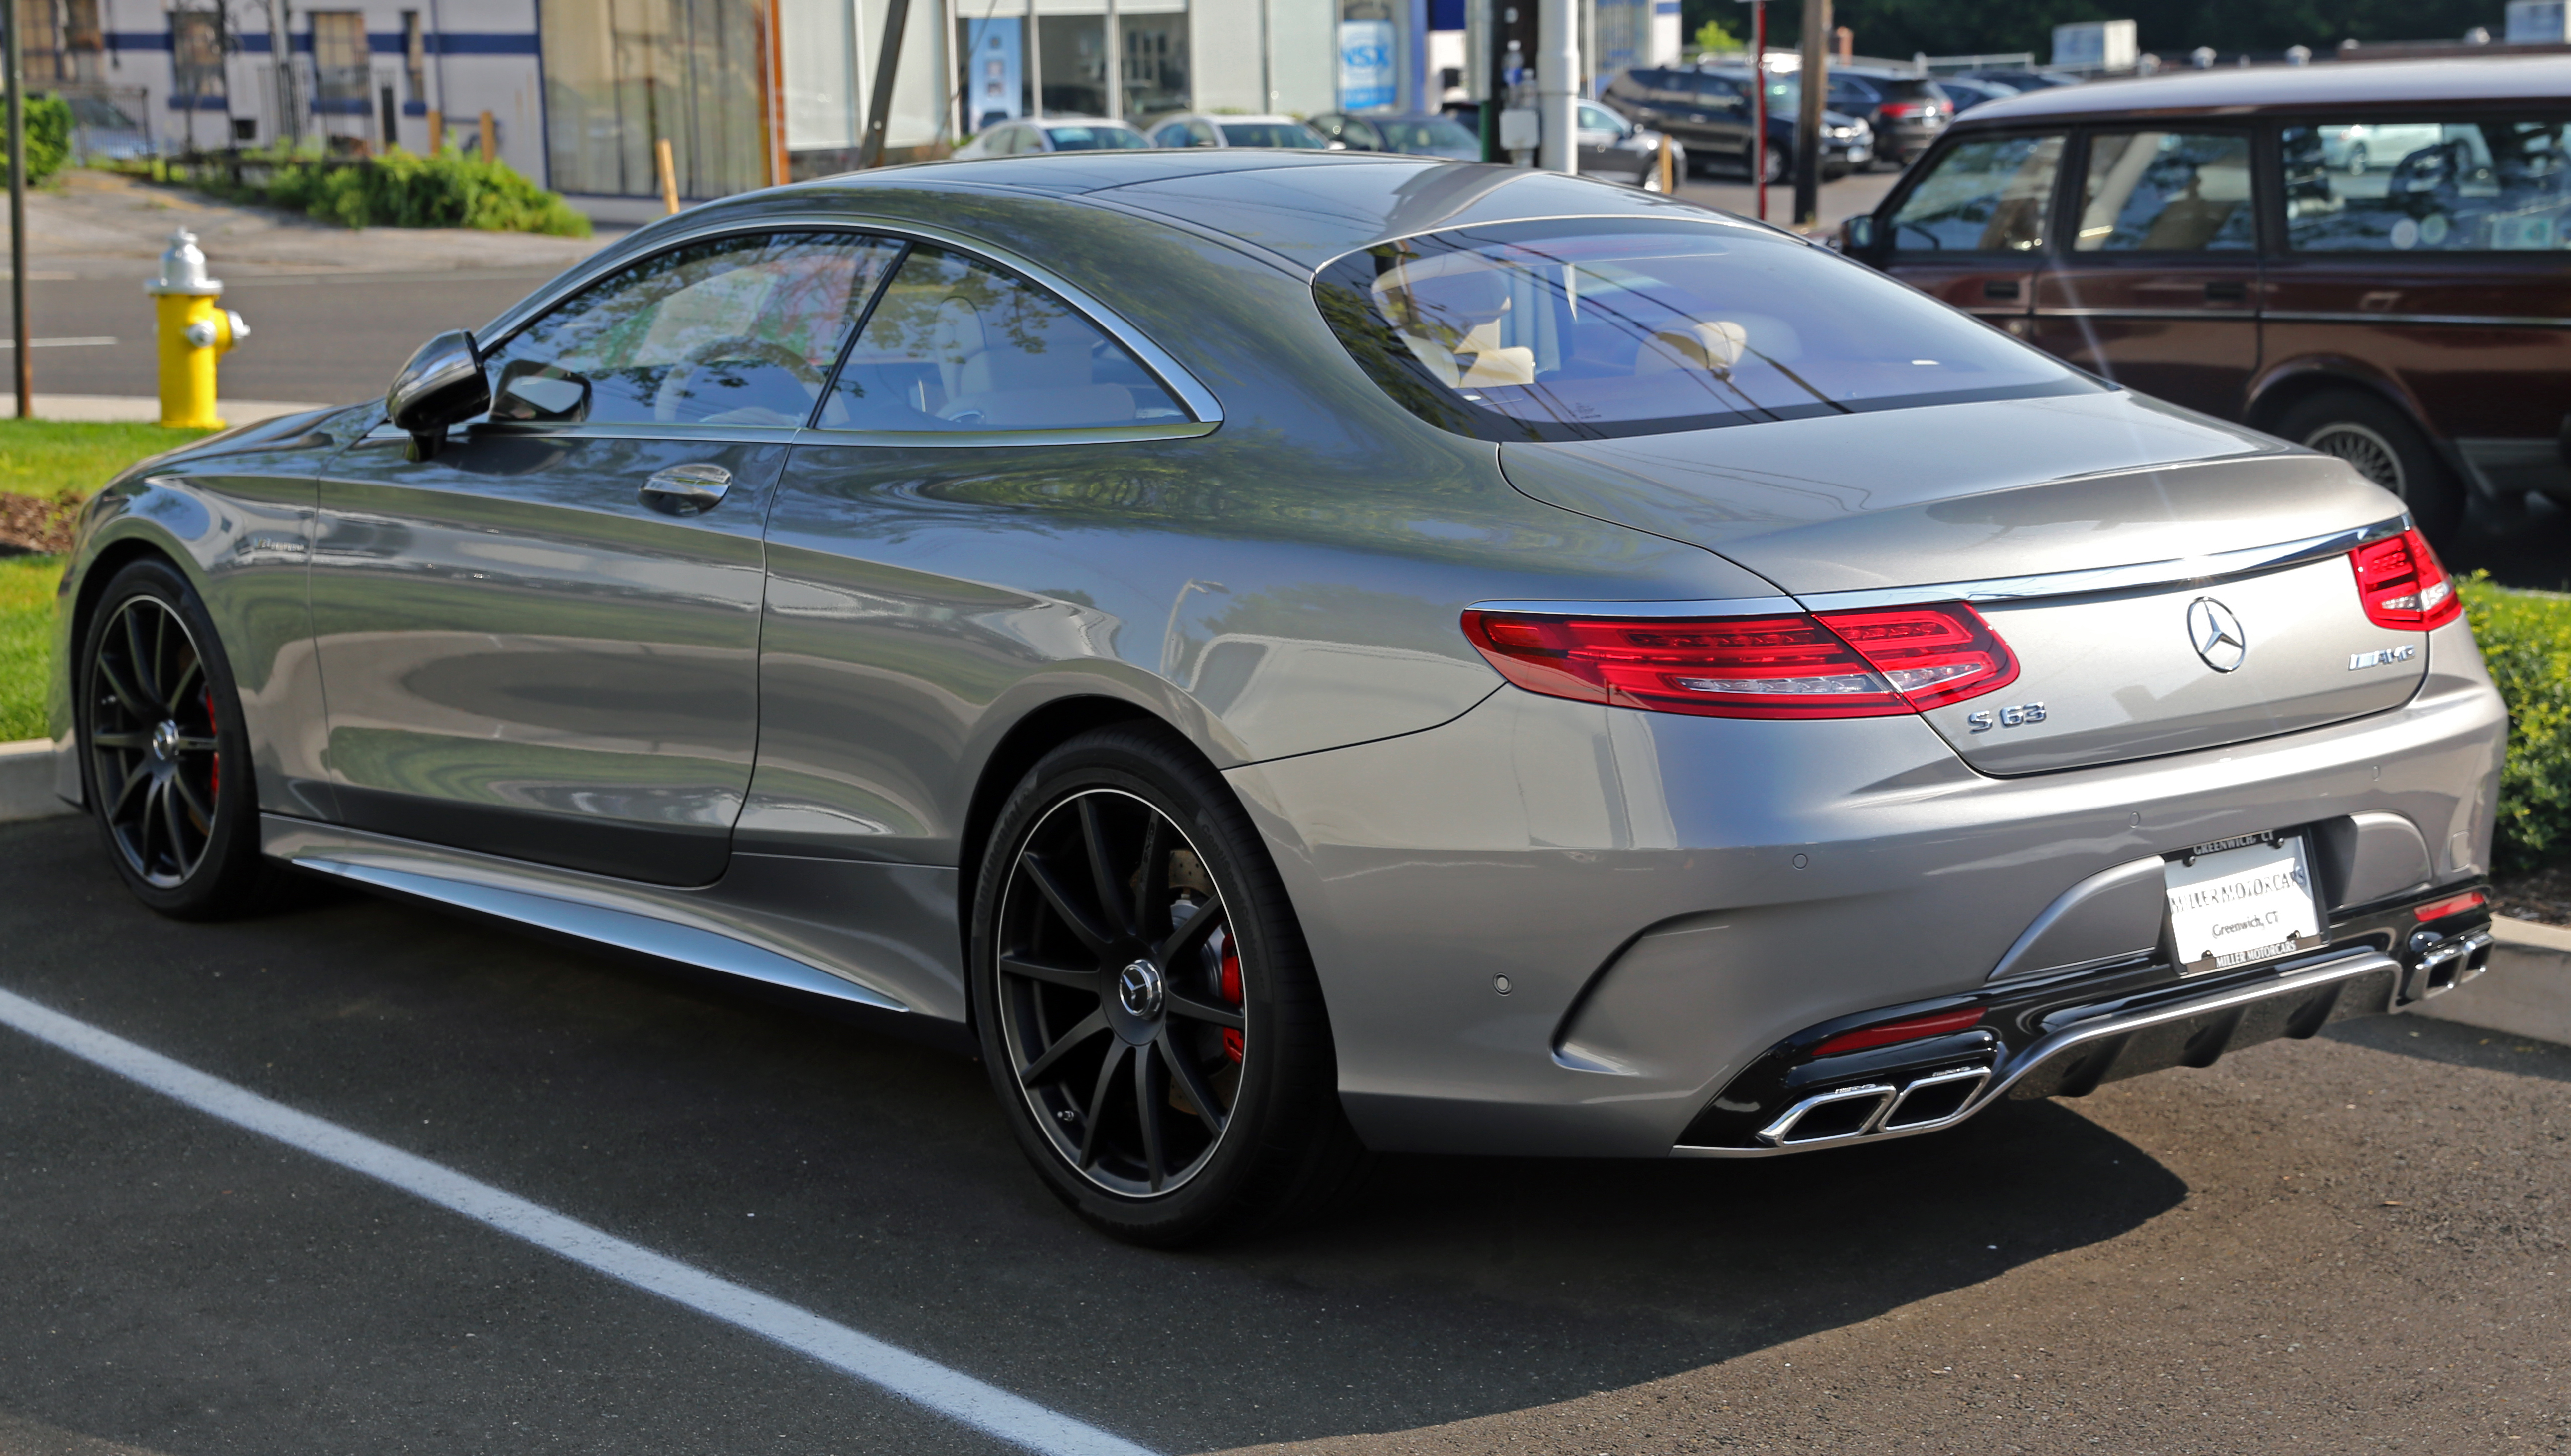 S63 2018 >> File:2015 Mercedes-Benz S63 AMG Coupé, rear left (US).jpg - Wikimedia Commons